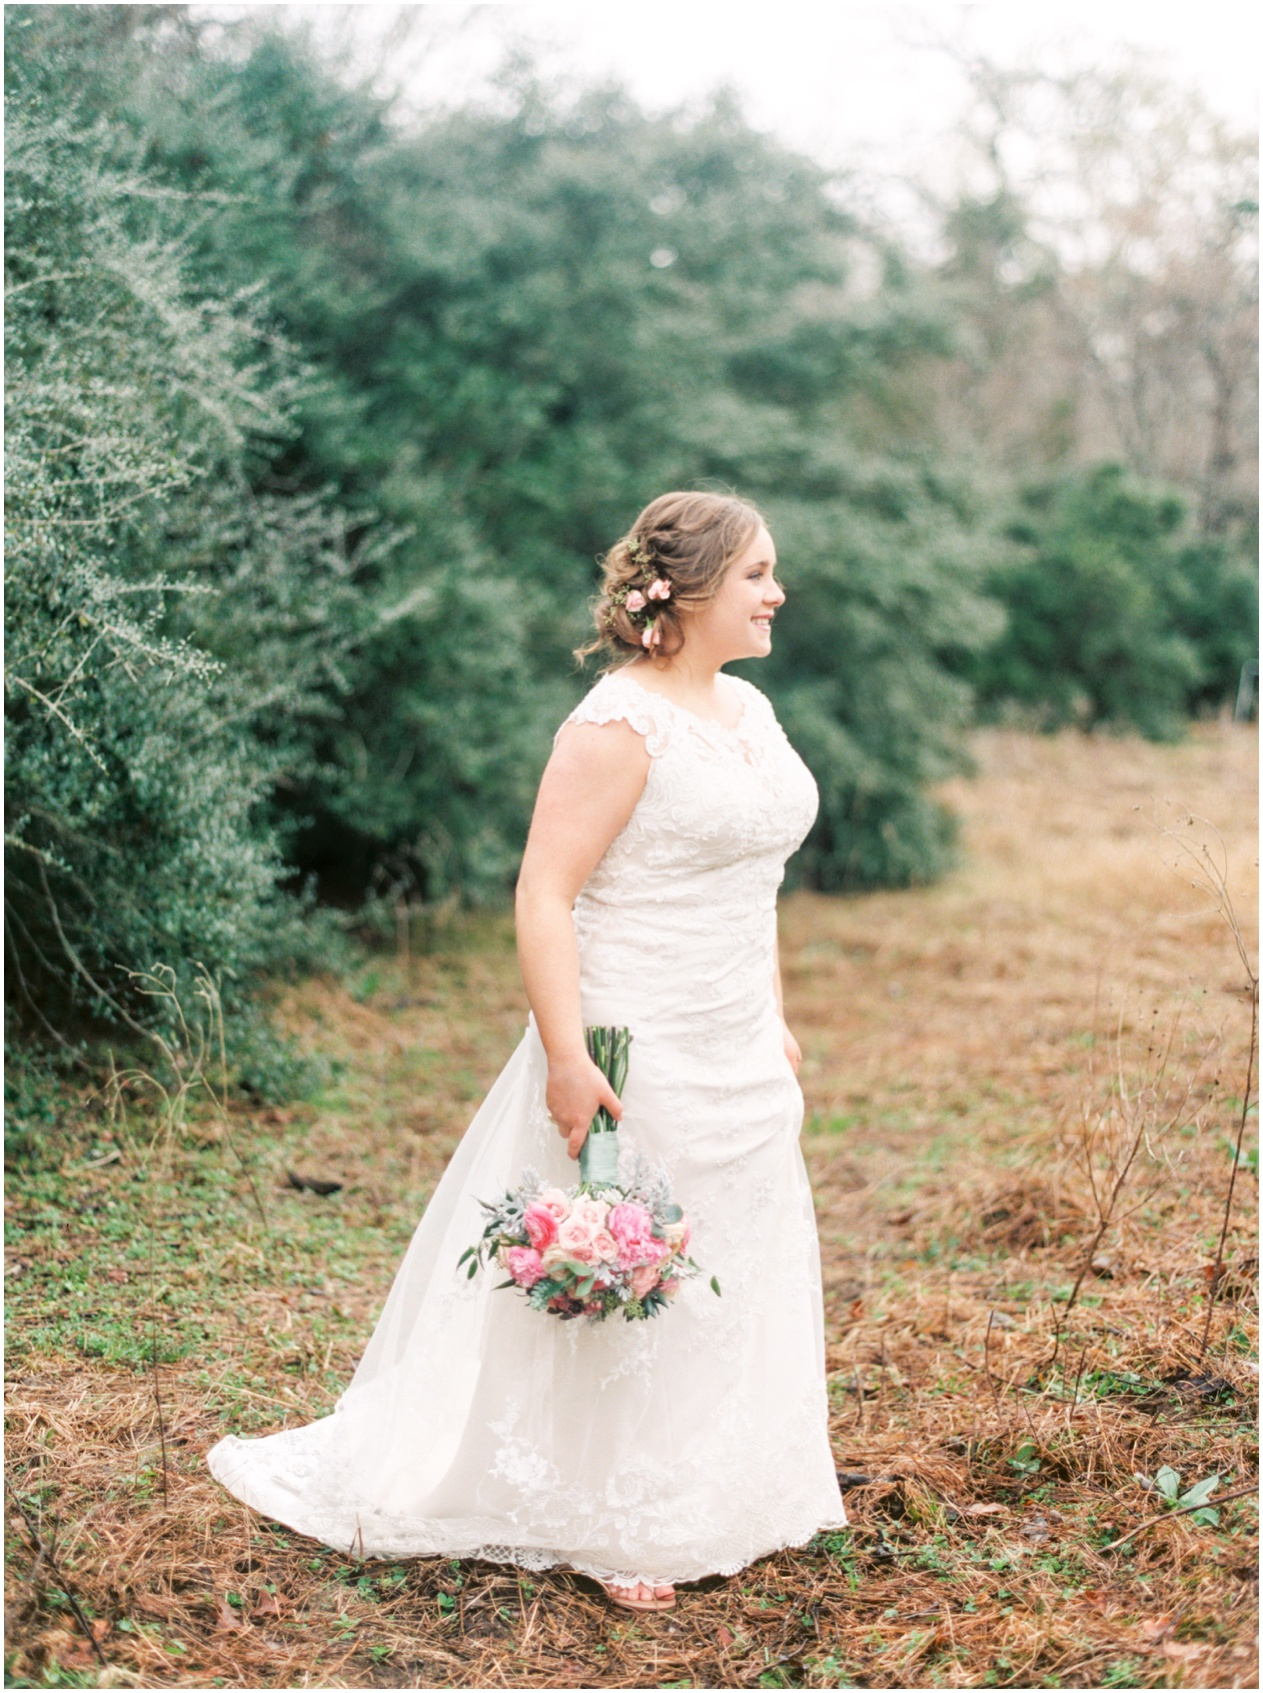 Sarah Best Photography - Claire's Bridals - The Amish Barn at Edge-38_STP.jpg